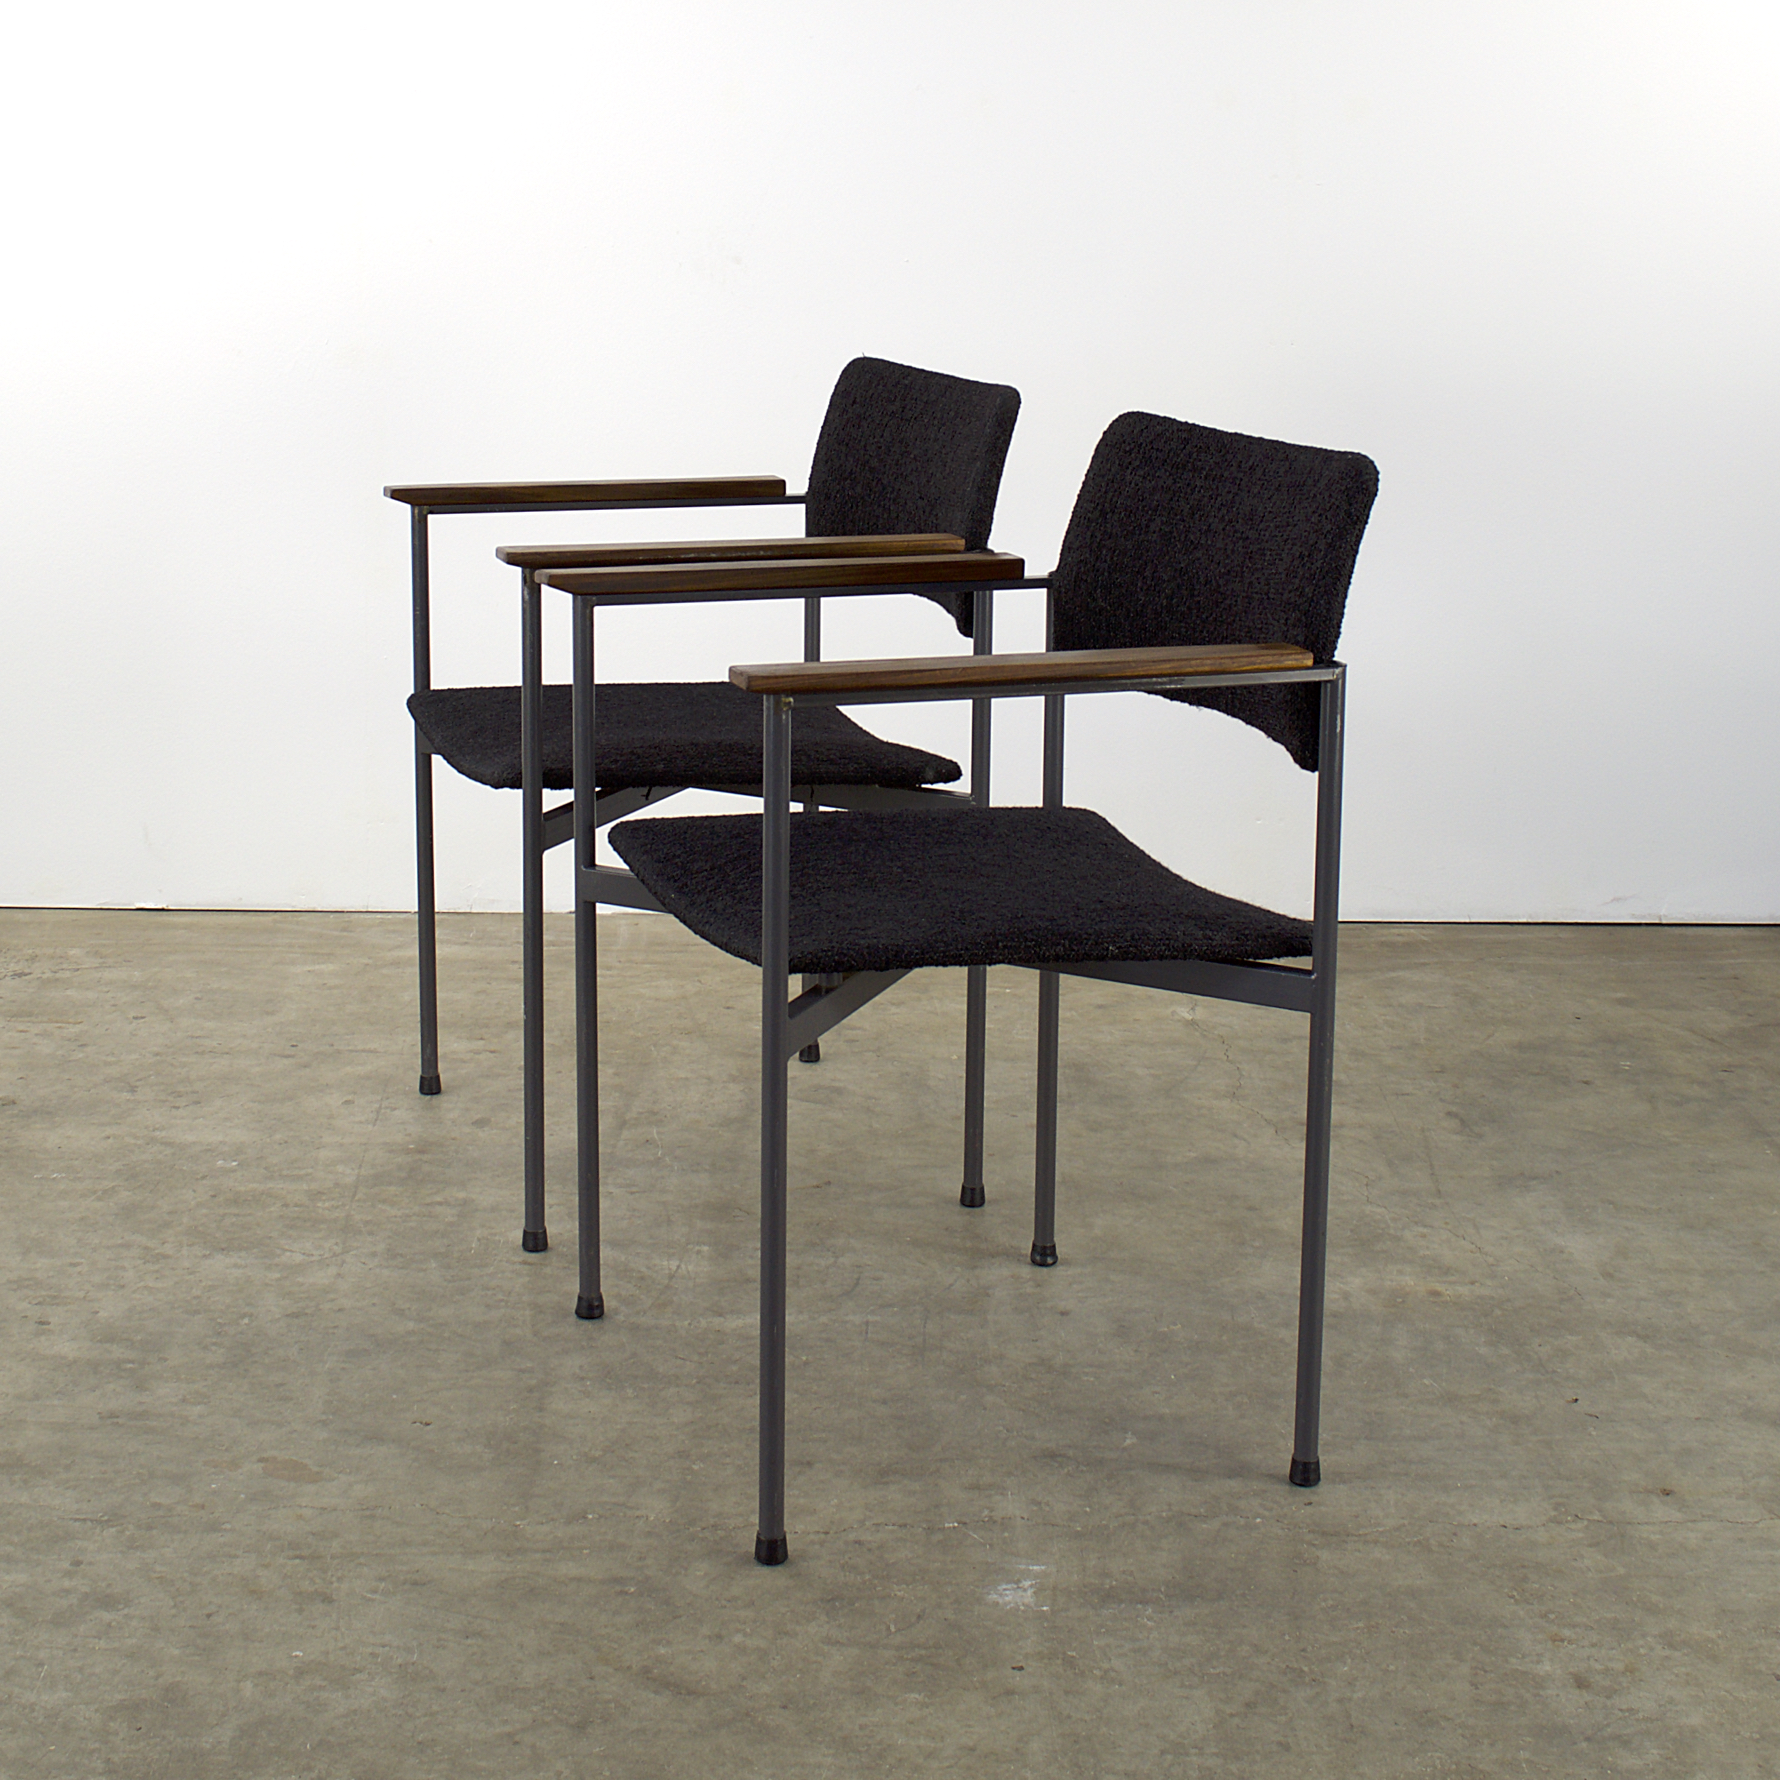 60 s metal frame office dining chairs set 2 barbmama for Dining chairs metal frame